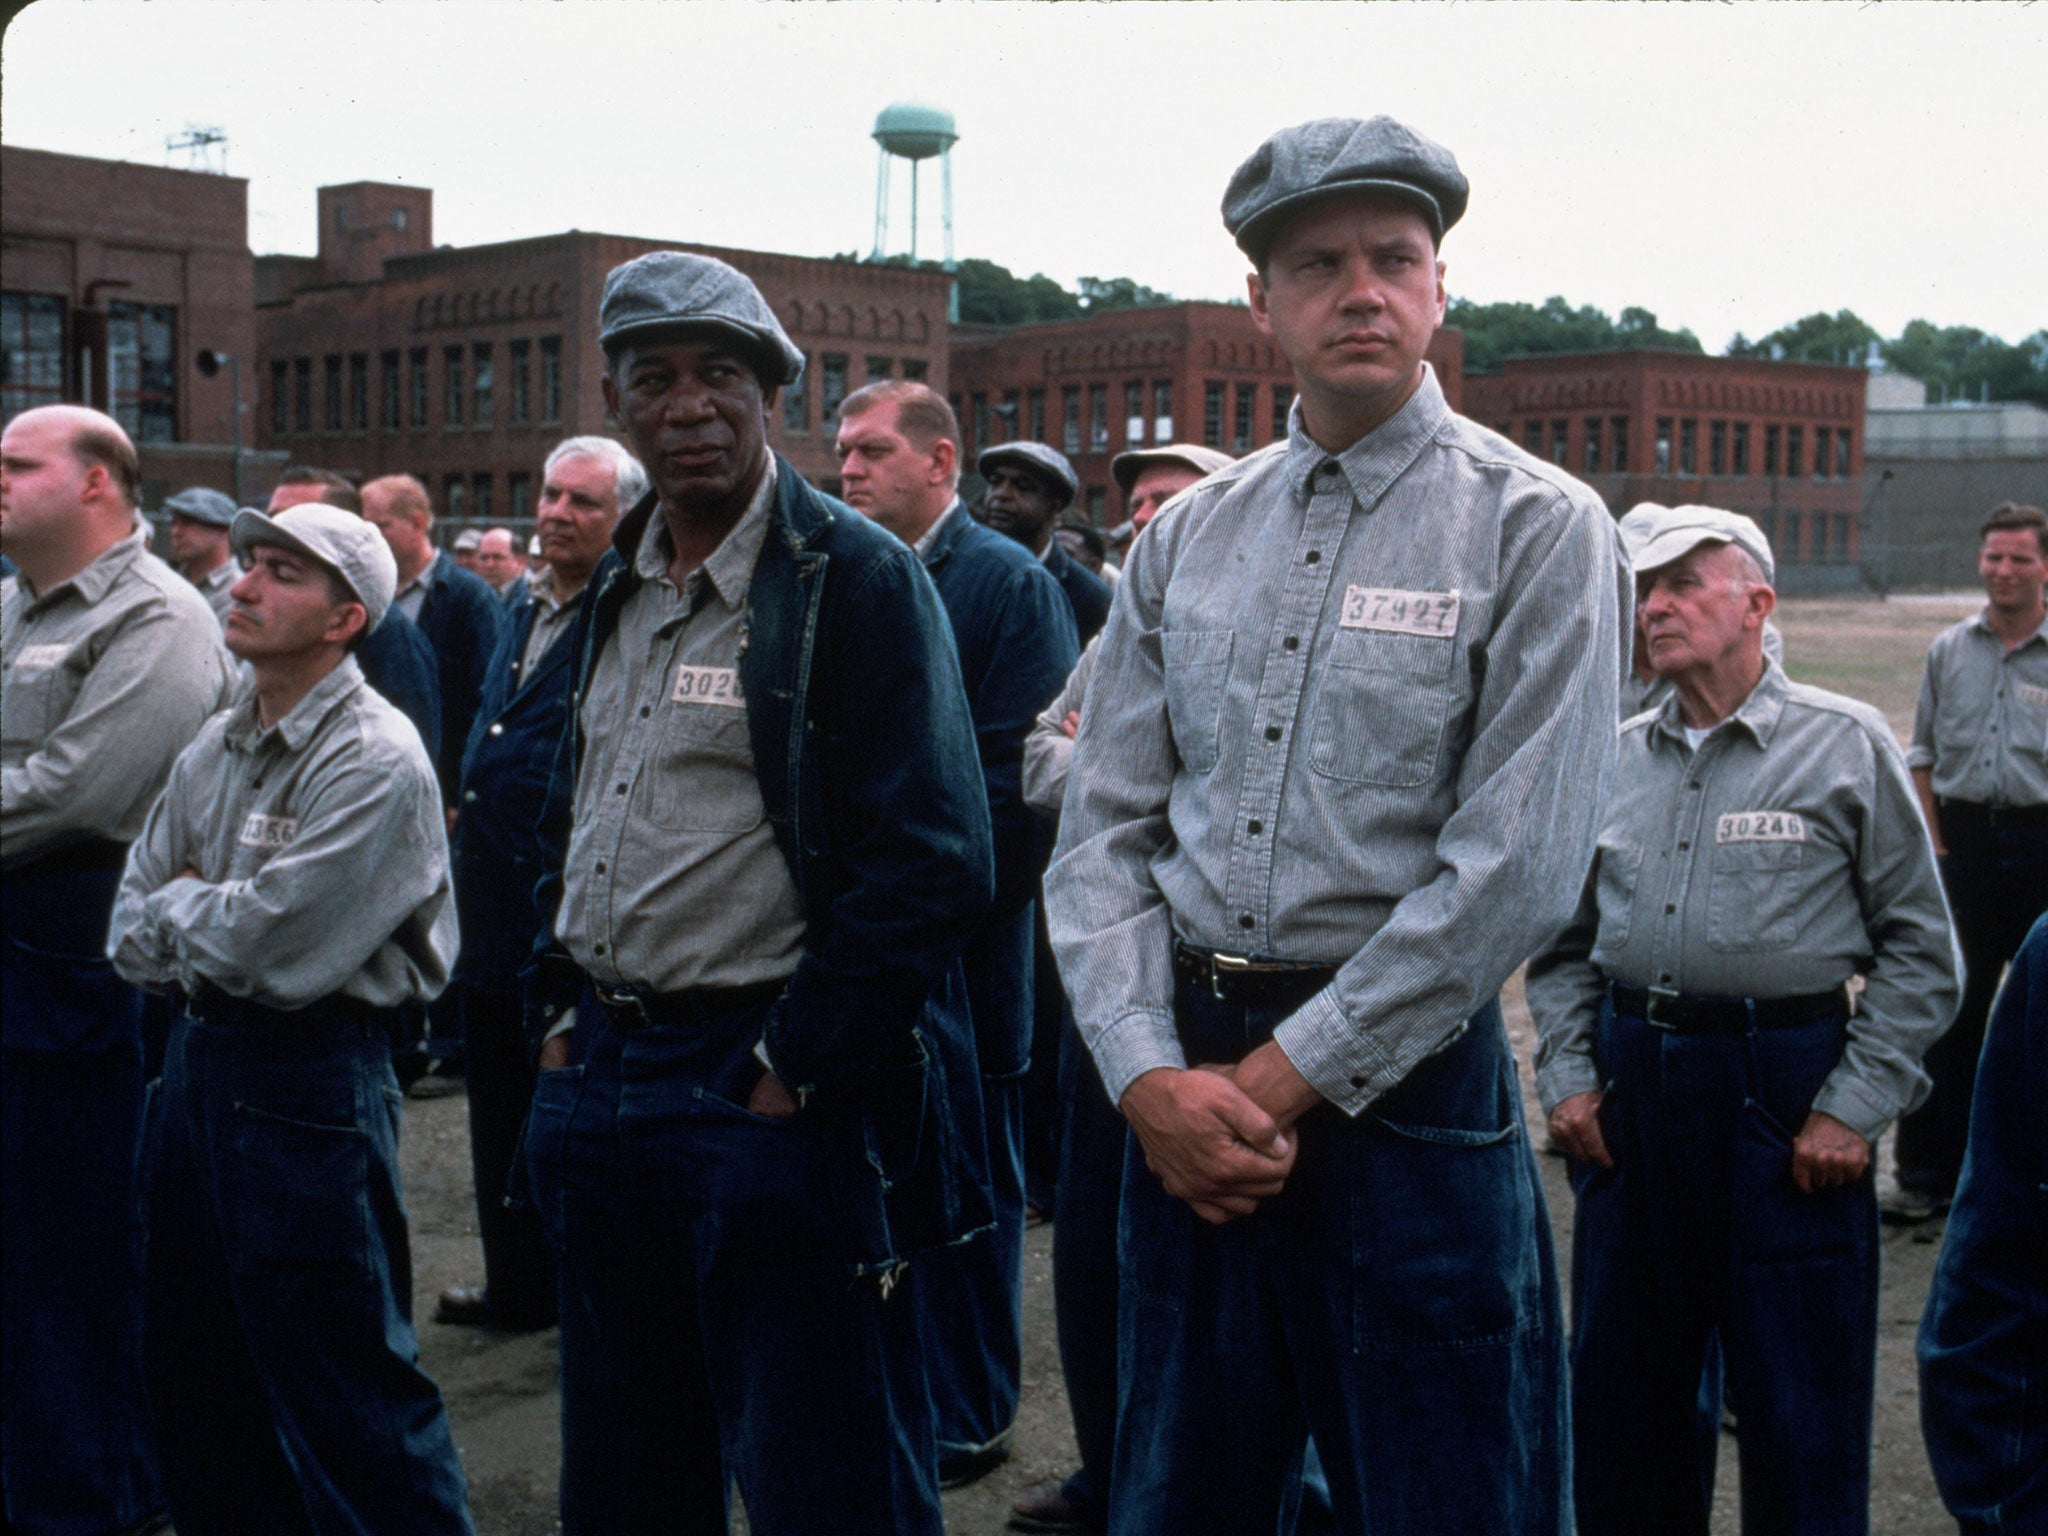 The Shawshank Redemption Prison Set To Open As All Year